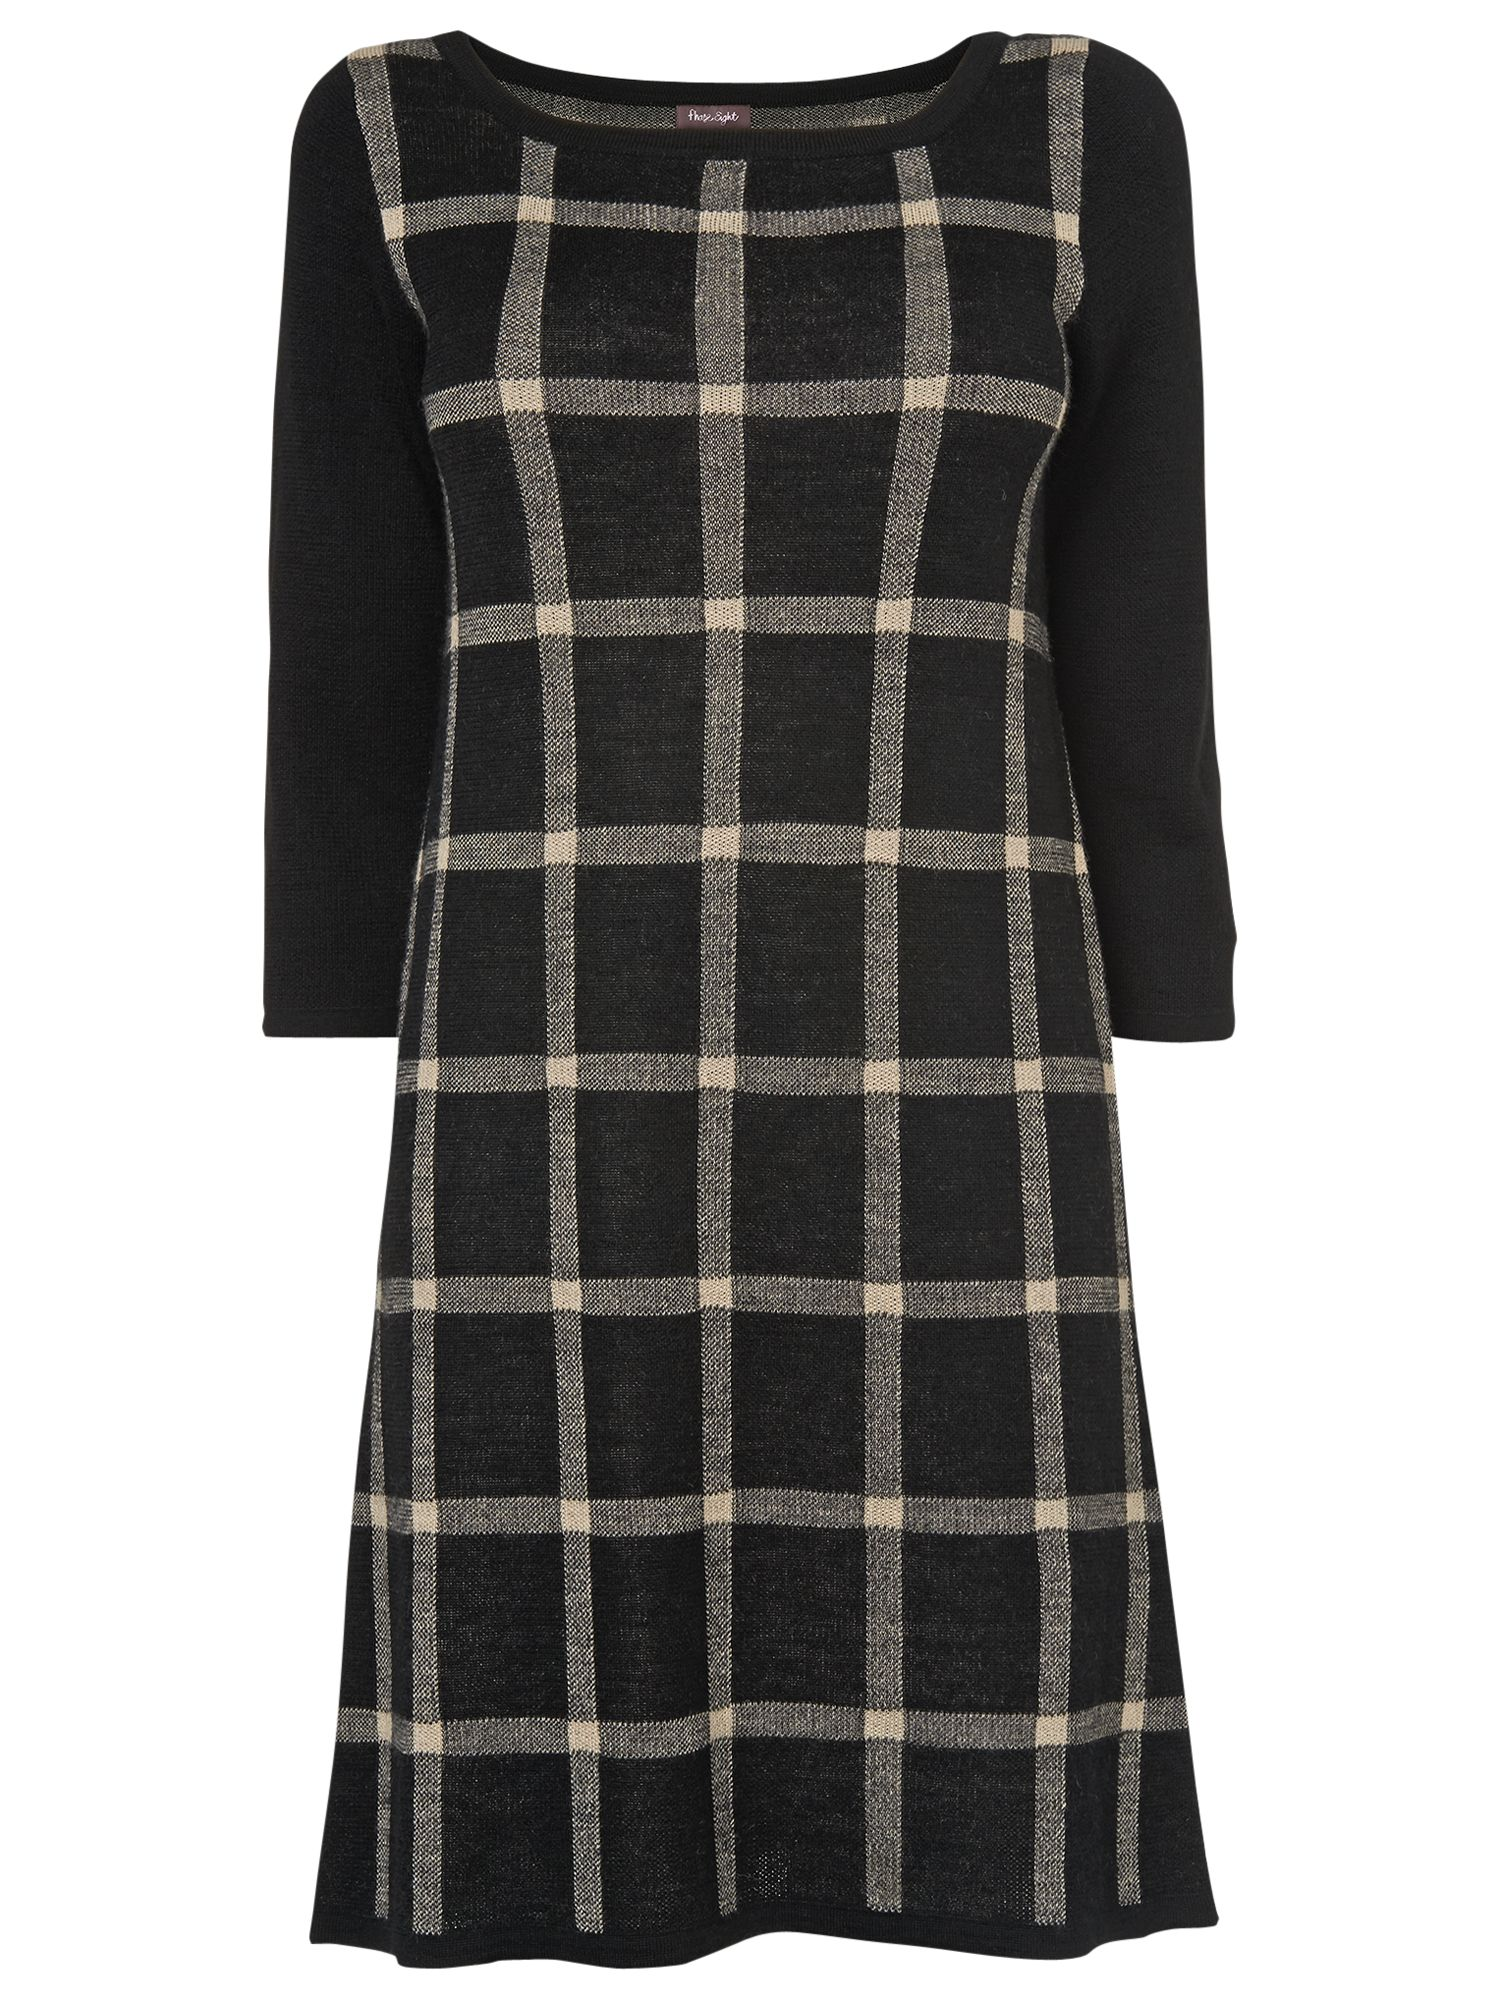 phase eight cara check dress black/stone, phase, eight, cara, check, dress, black/stone, phase eight, 16|18|14, clearance, womenswear offers, womens dresses offers, women, inactive womenswear, new reductions, womens dresses, special offers, fashion magazine, brands l-z, 1735407